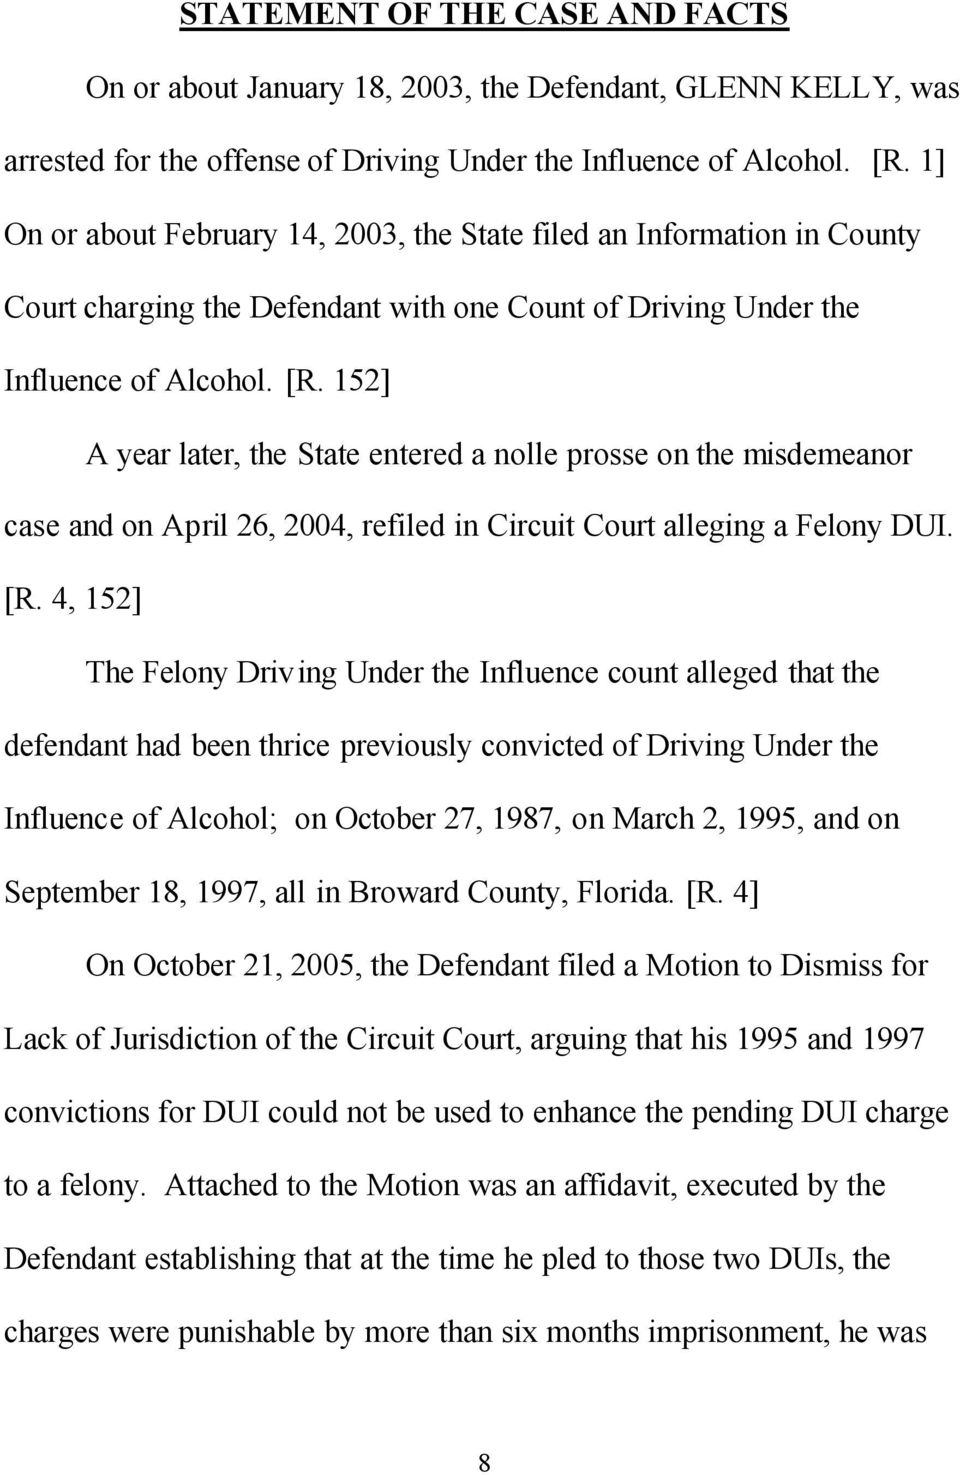 152] A year later, the State entered a nolle prosse on the misdemeanor case and on April 26, 2004, refiled in Circuit Court alleging a Felony DUI. [R.